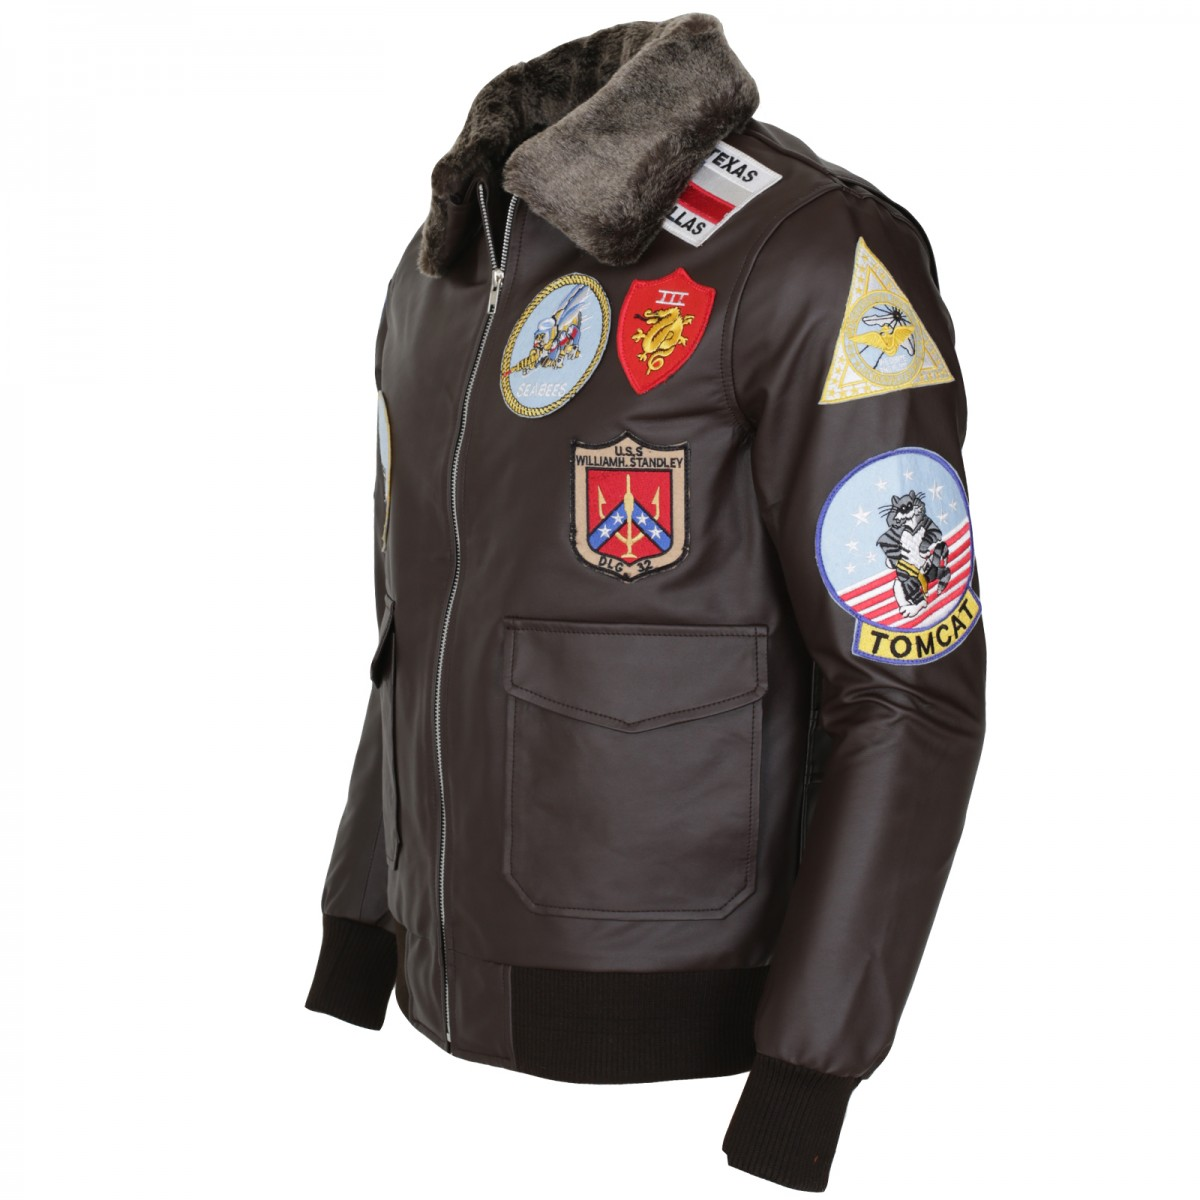 Top Gun Leather Bomber Jacket | Buy Top Gun Leather Jacket ...